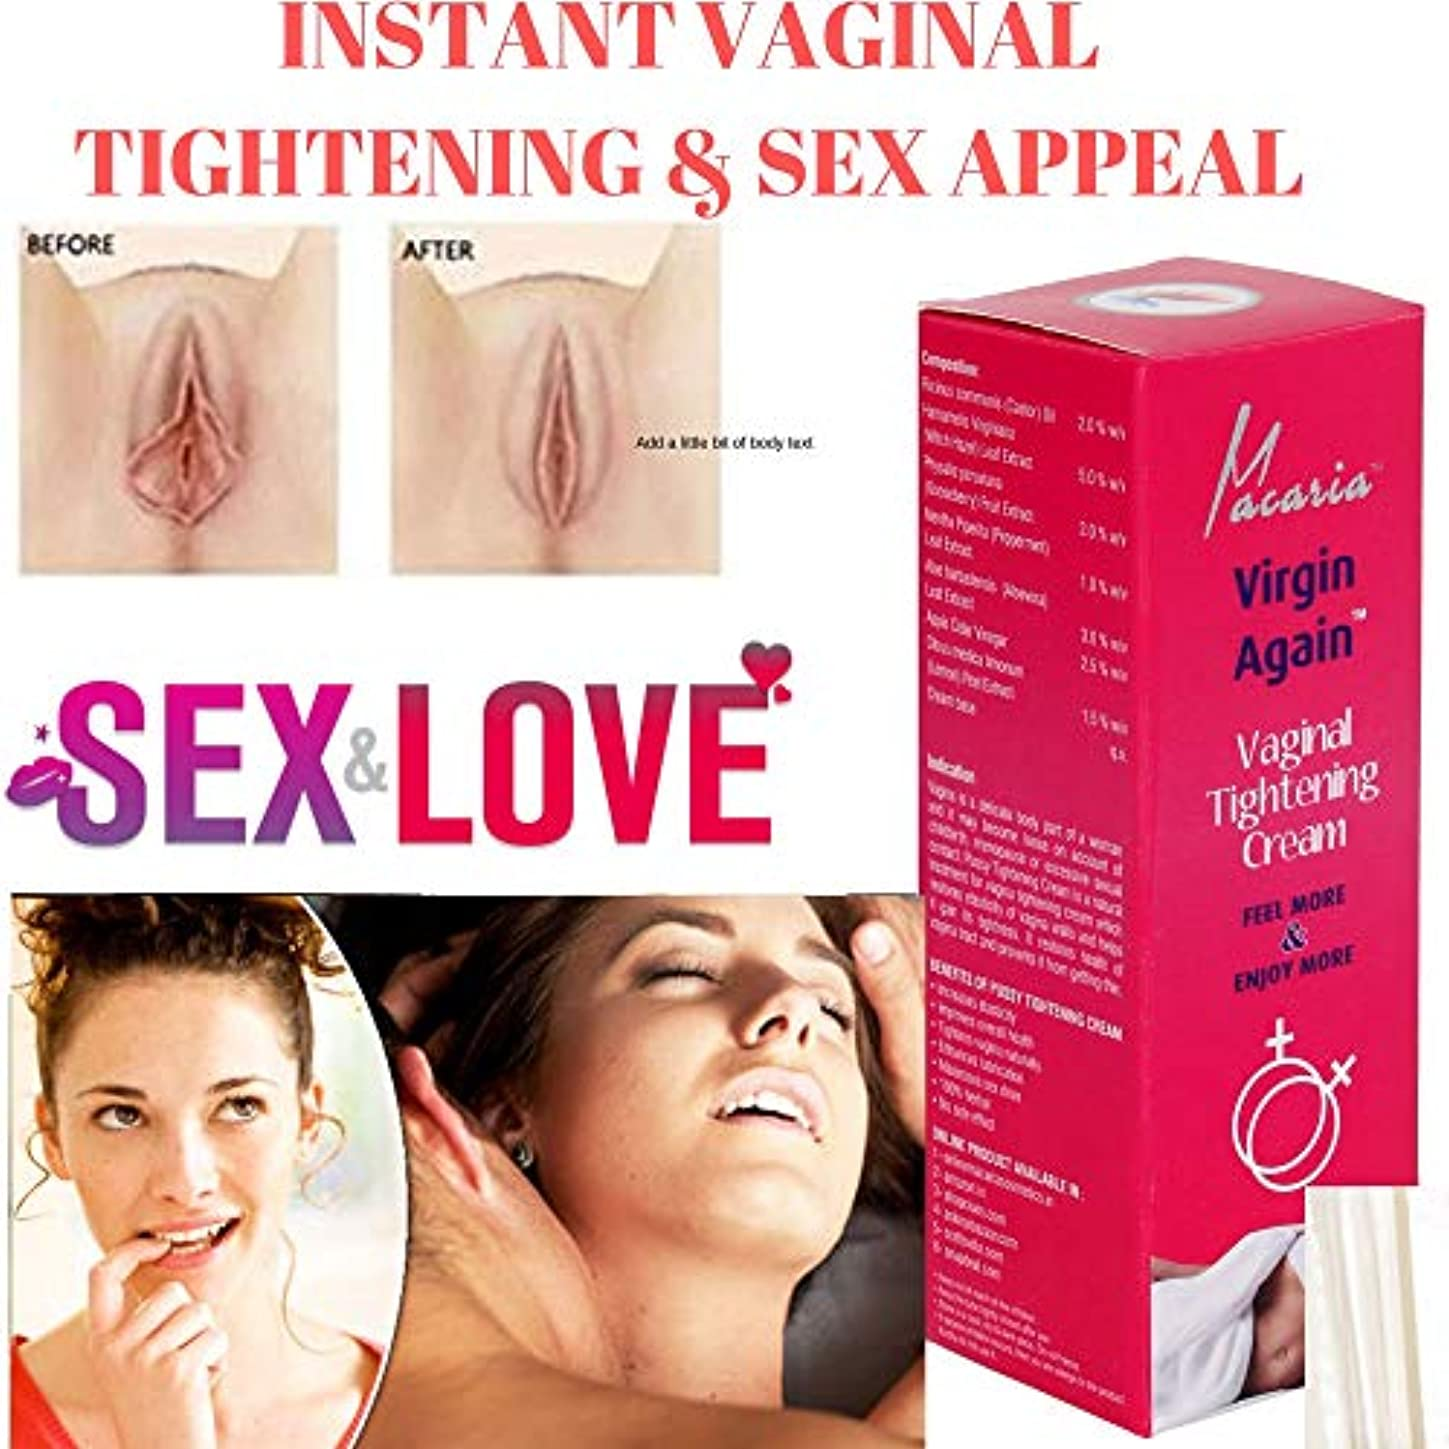 最小結晶スナッチVIRGIN AGAIN CREAM ( VAGINAL VAGINA TIGHTENING CREAM GEL LOTION VIRGIN AGAIN CREAM ( VAGINAL VAGINA TIGHTENING...